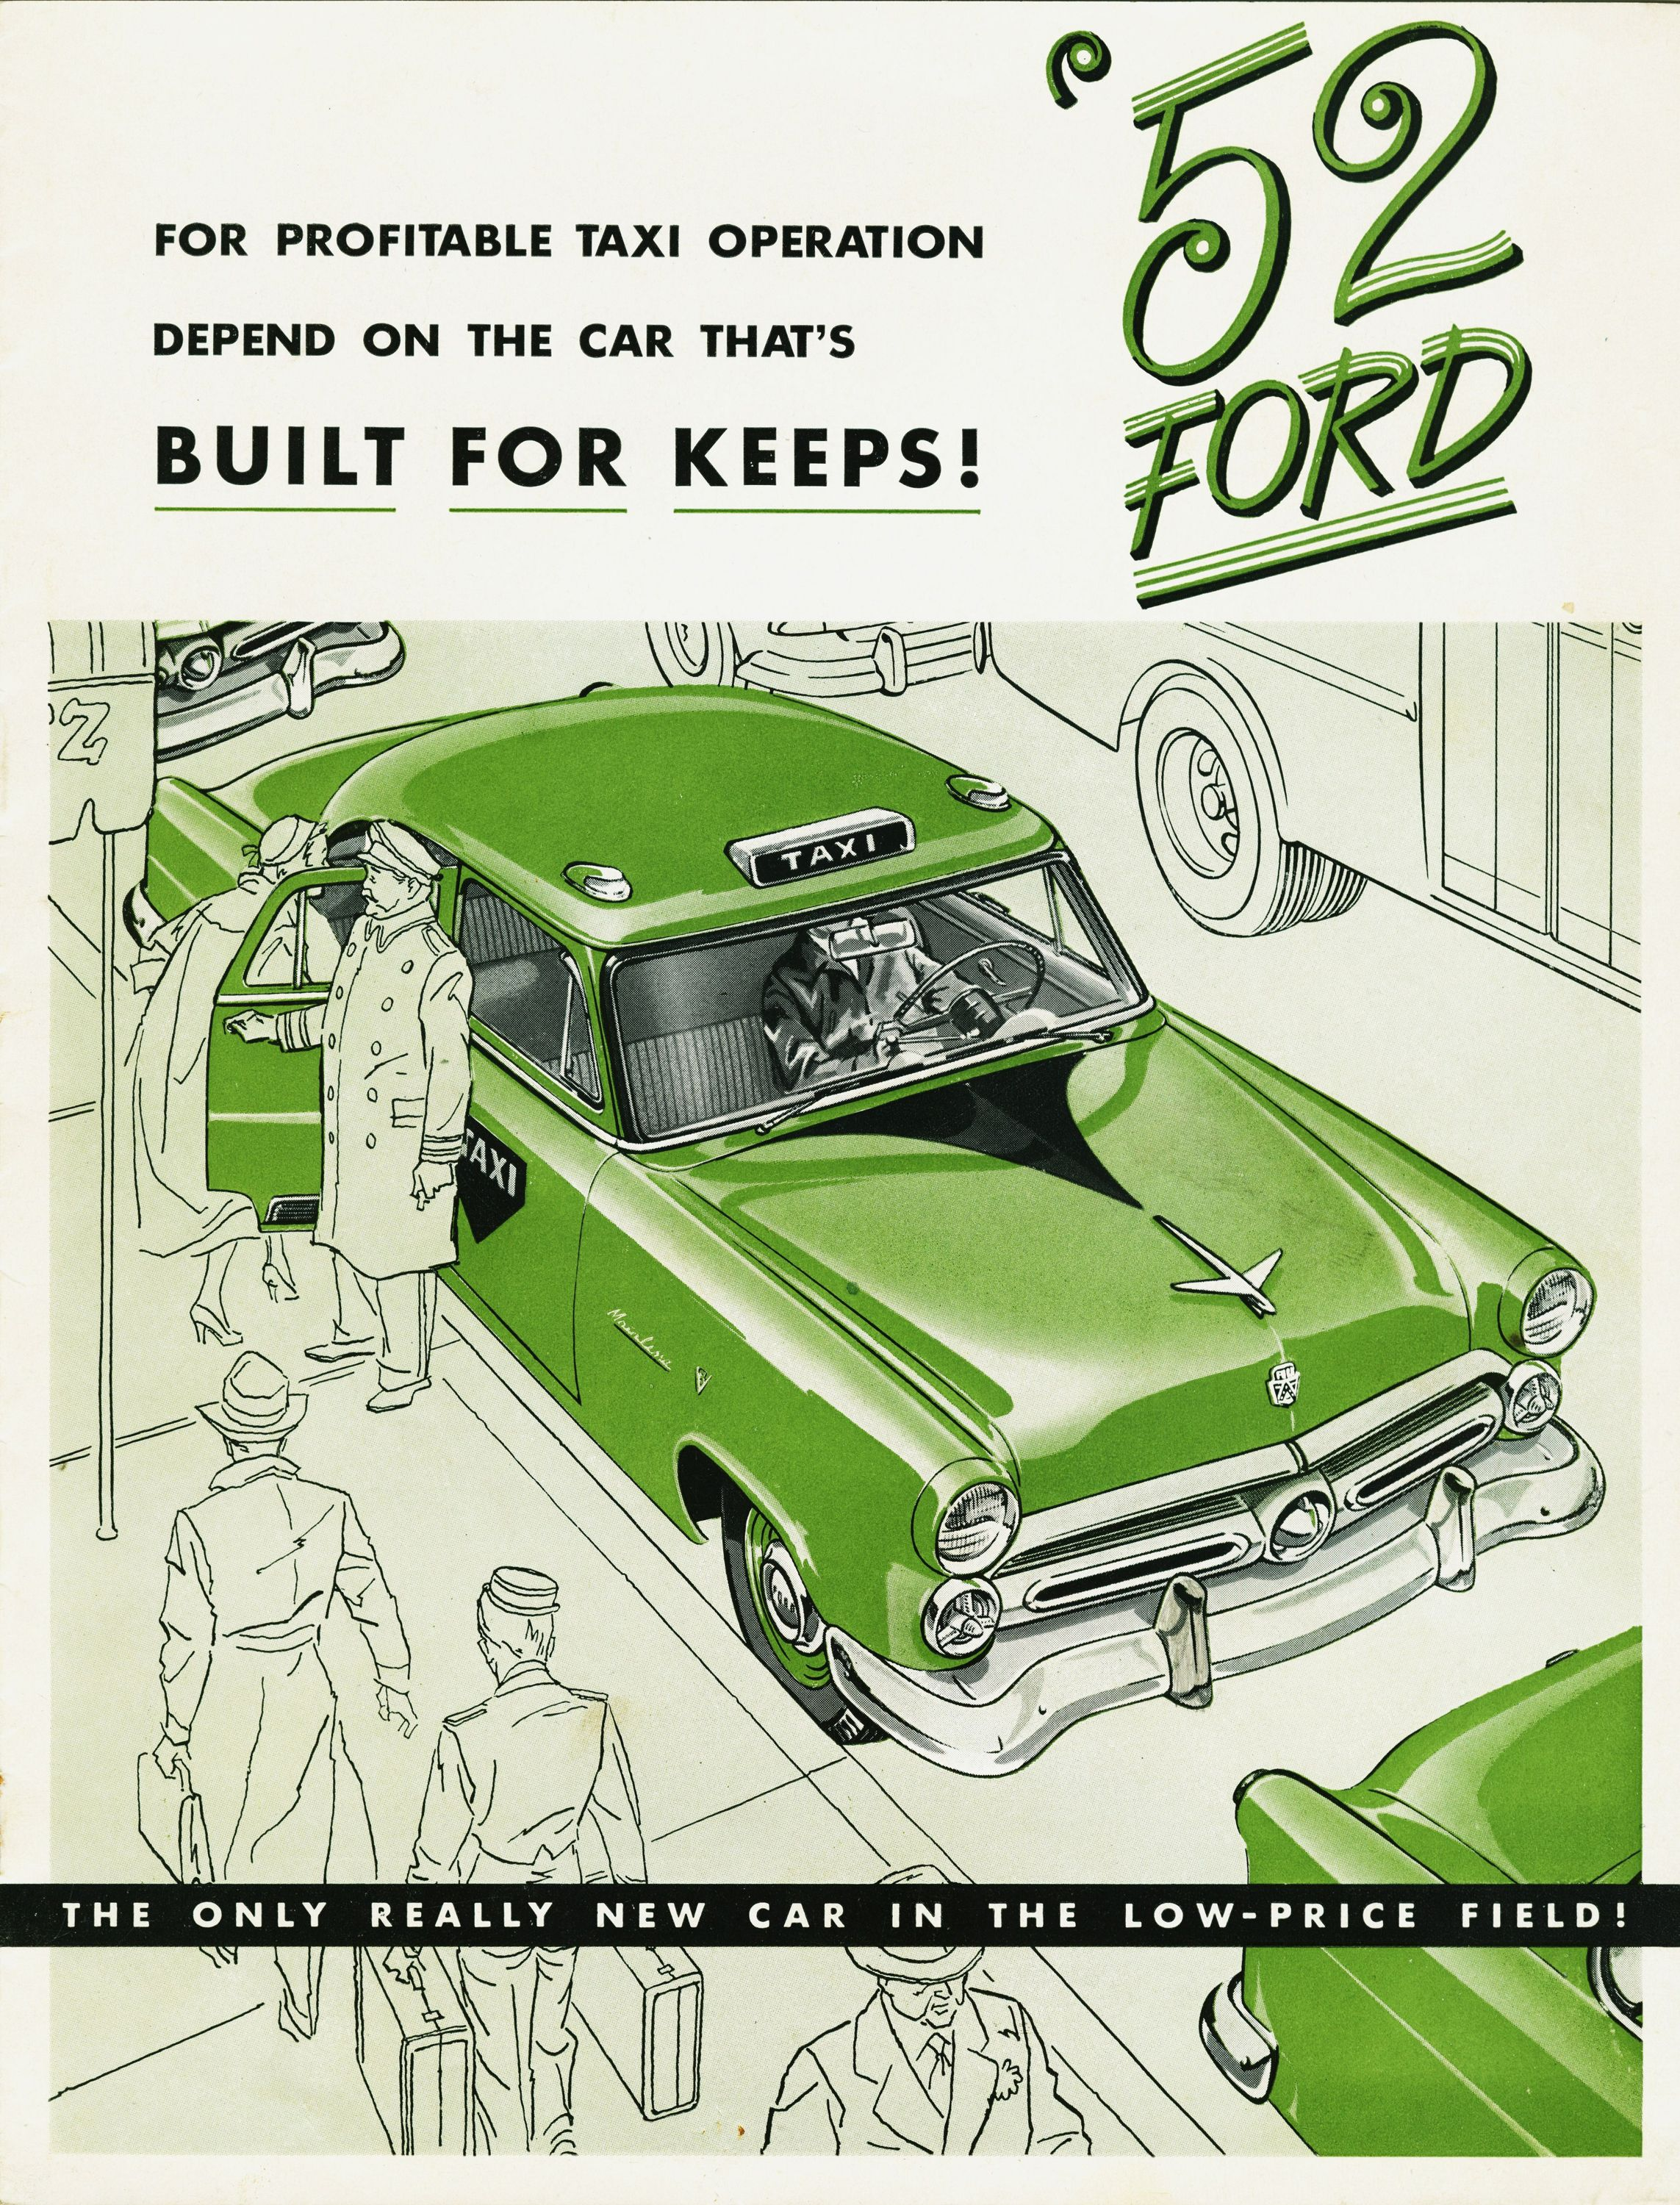 Ford brochure from 1952. | Advertising vintage cars | Pinterest